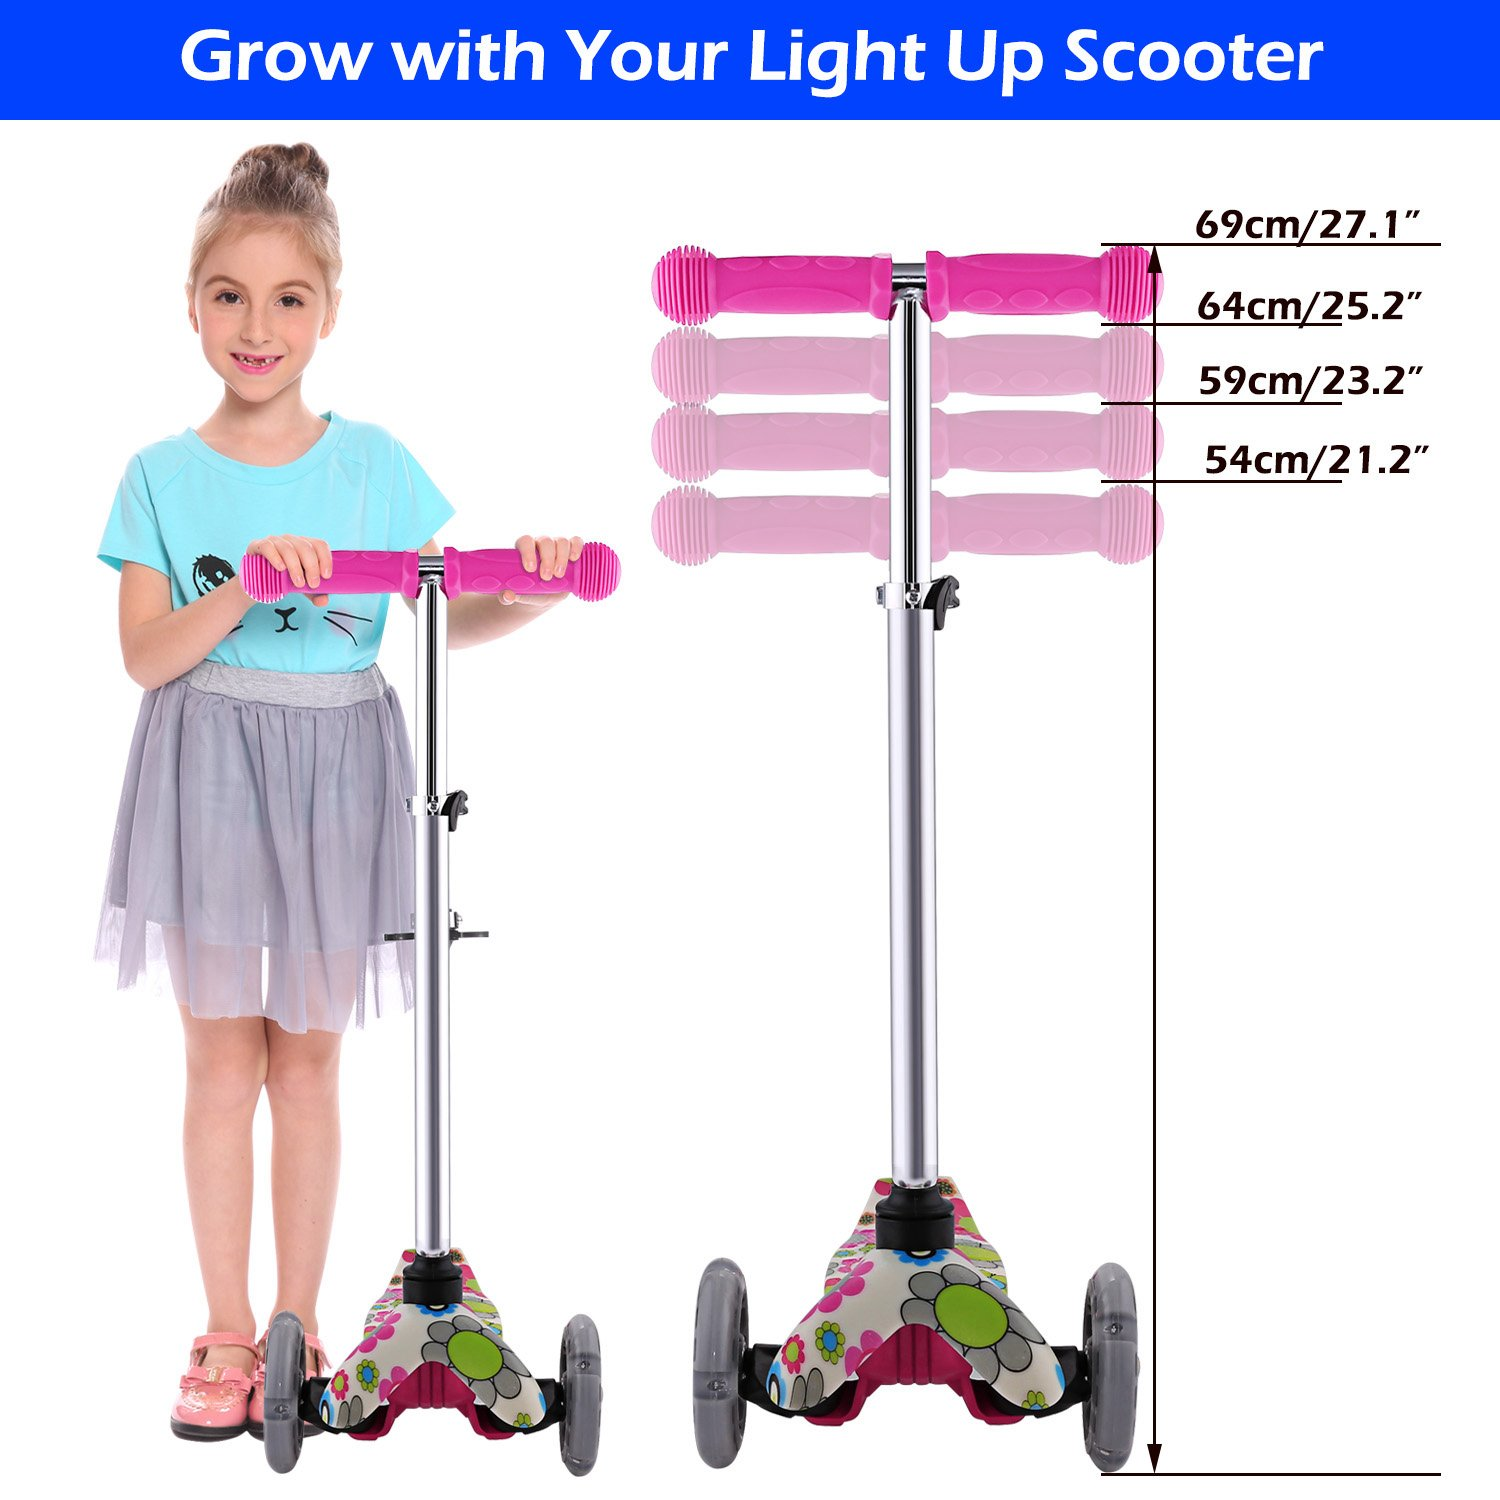 Amazon.com: Moroly Kids Scooter 2 Wheel Kick Scooter LED Scooter Children Push Folding Flicker Scooter for Boys Girls (US Stock) (Green): Toys & Games